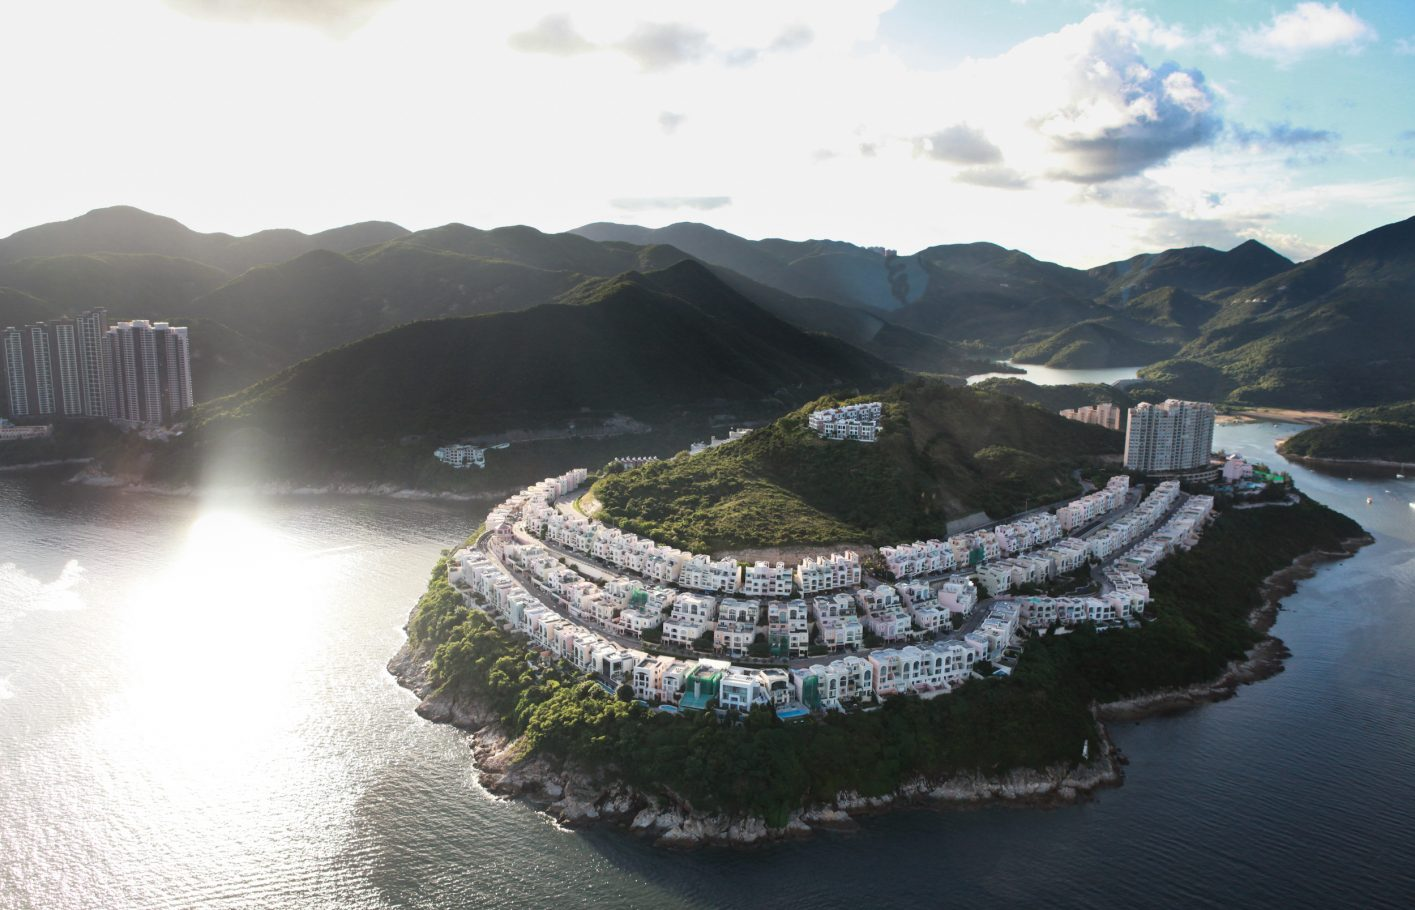 Hong Kong Photography, Aerial Photography, Landscape Photography, Helicopter